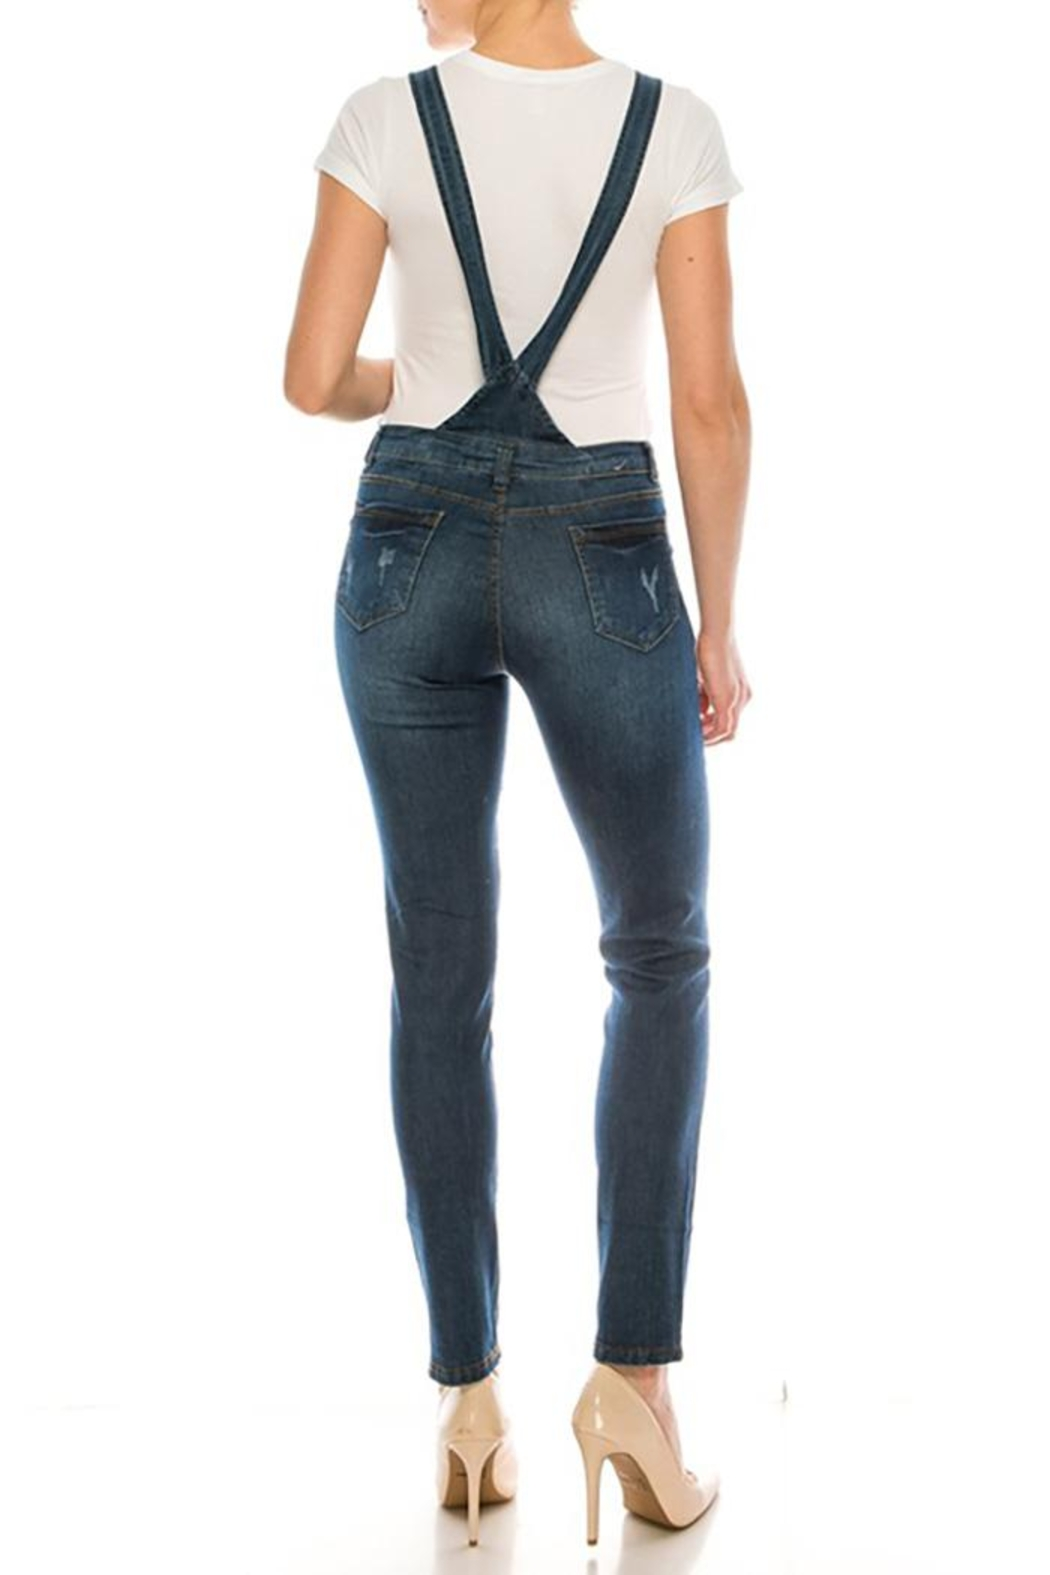 Color 5 Baggy Denim Overalls Jumpsuit Harem Pants - Front Full Image